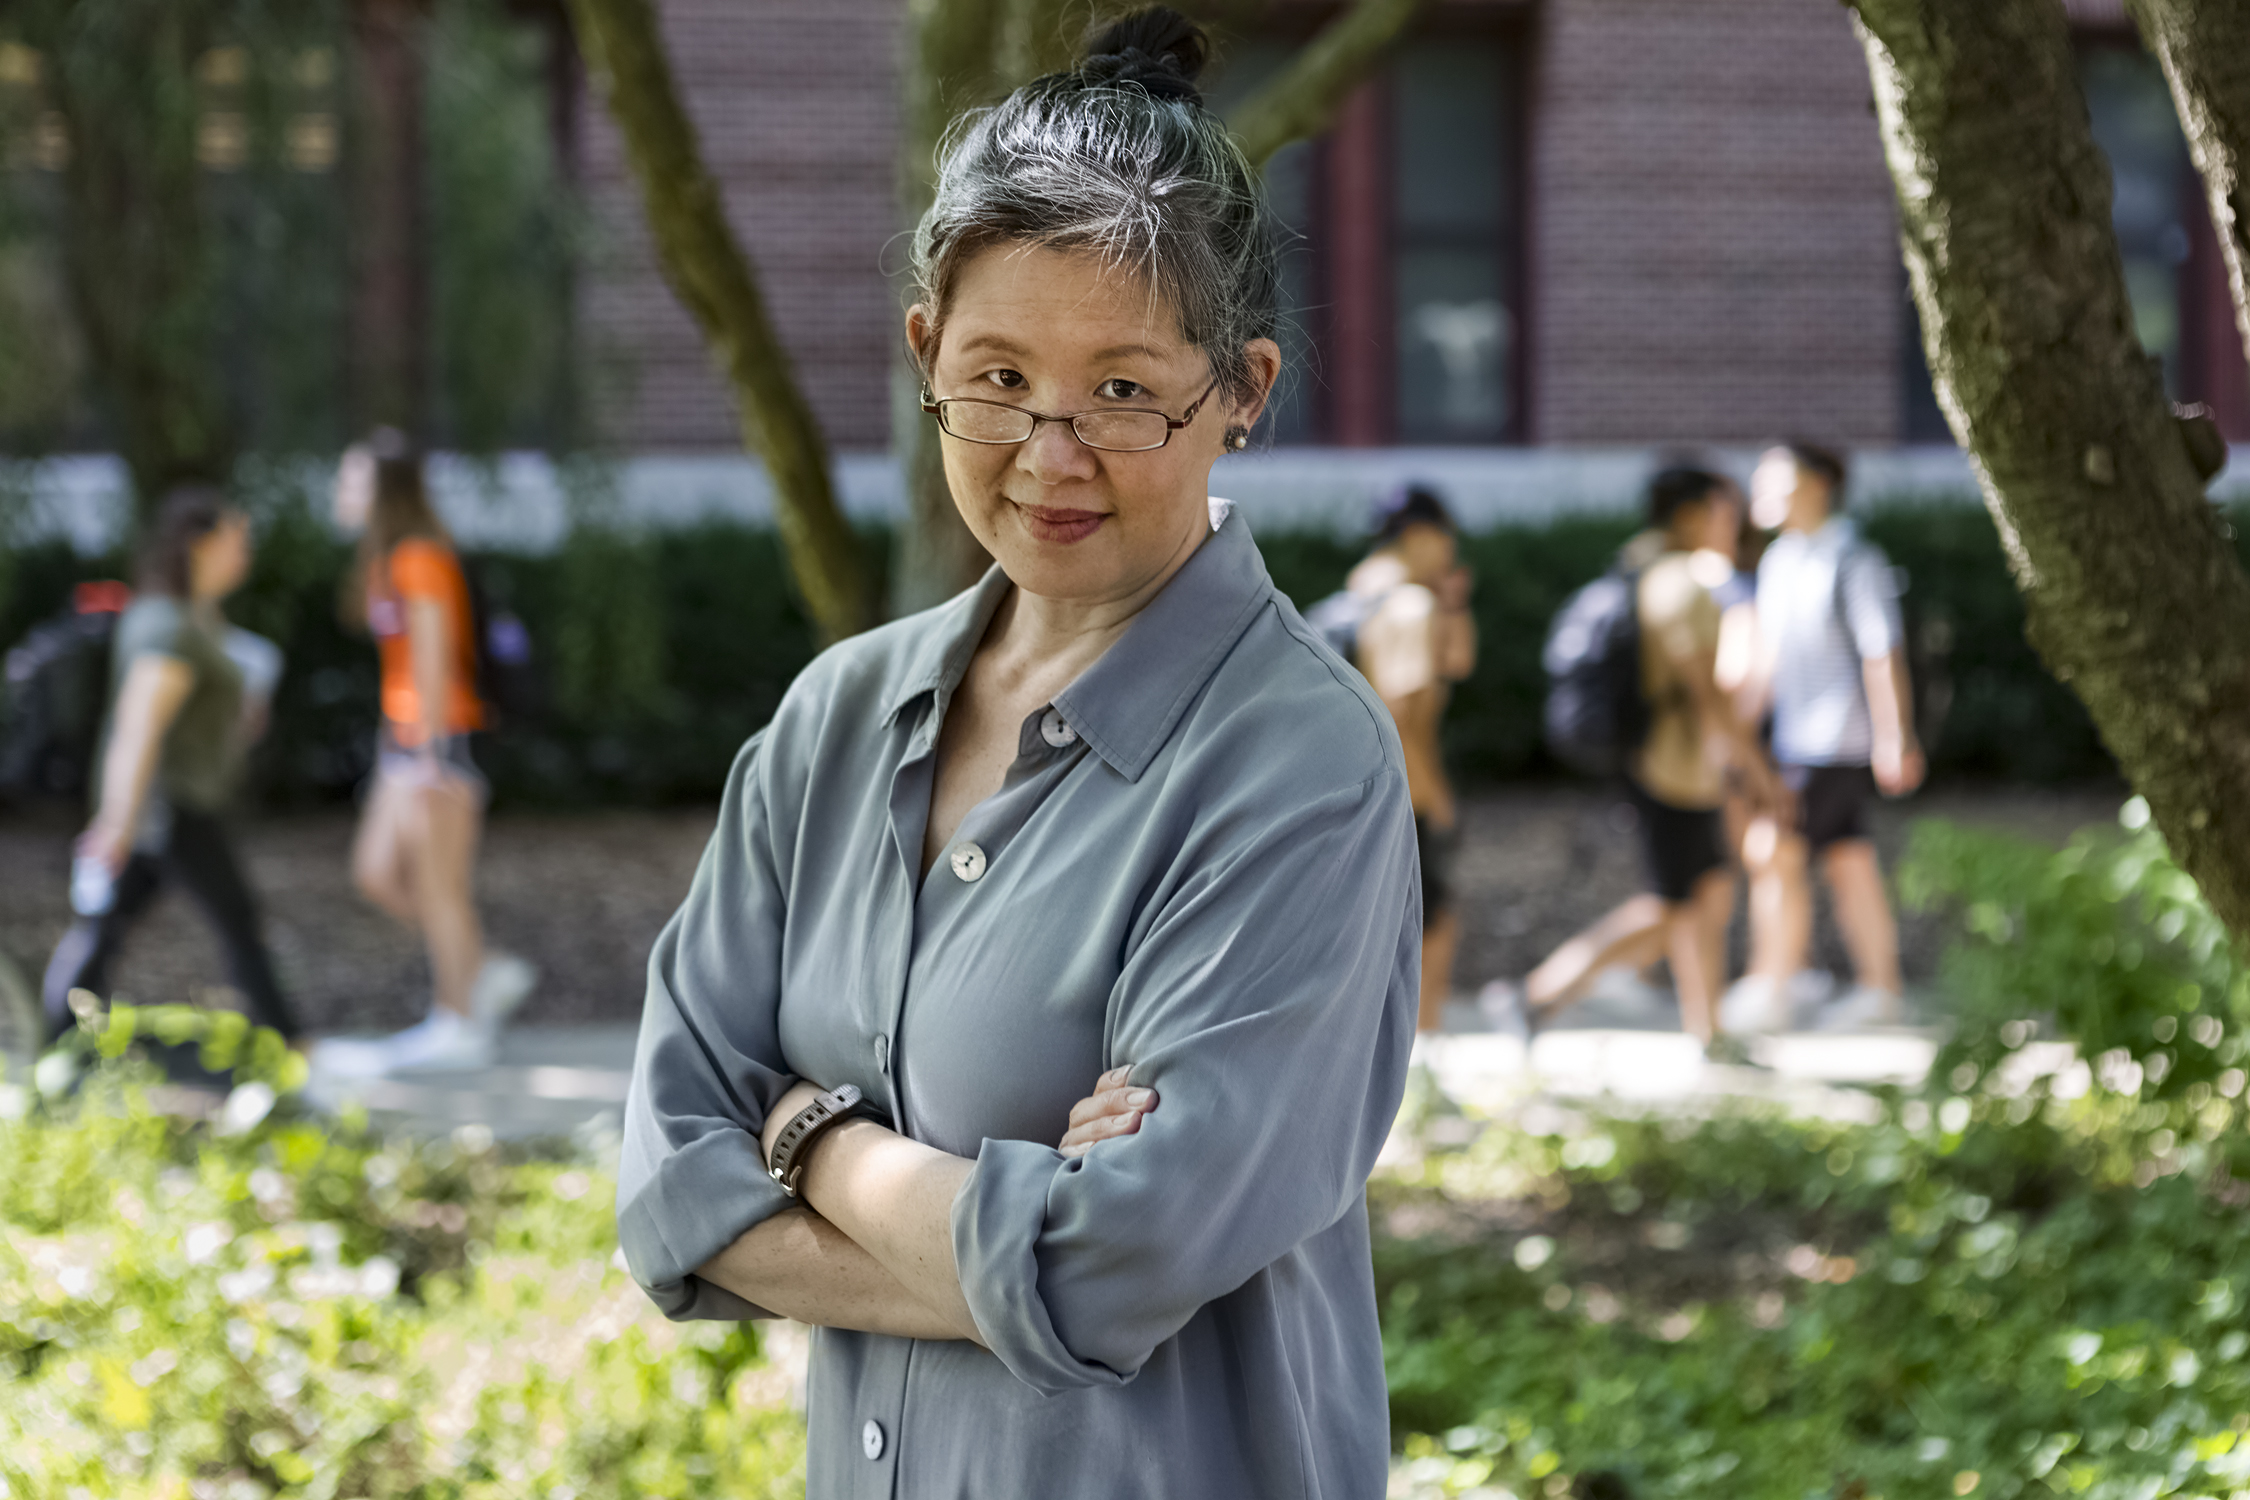 Frances E Kuo / University of Illinois at Urbana-Champaign / for the Heinz Foundaion